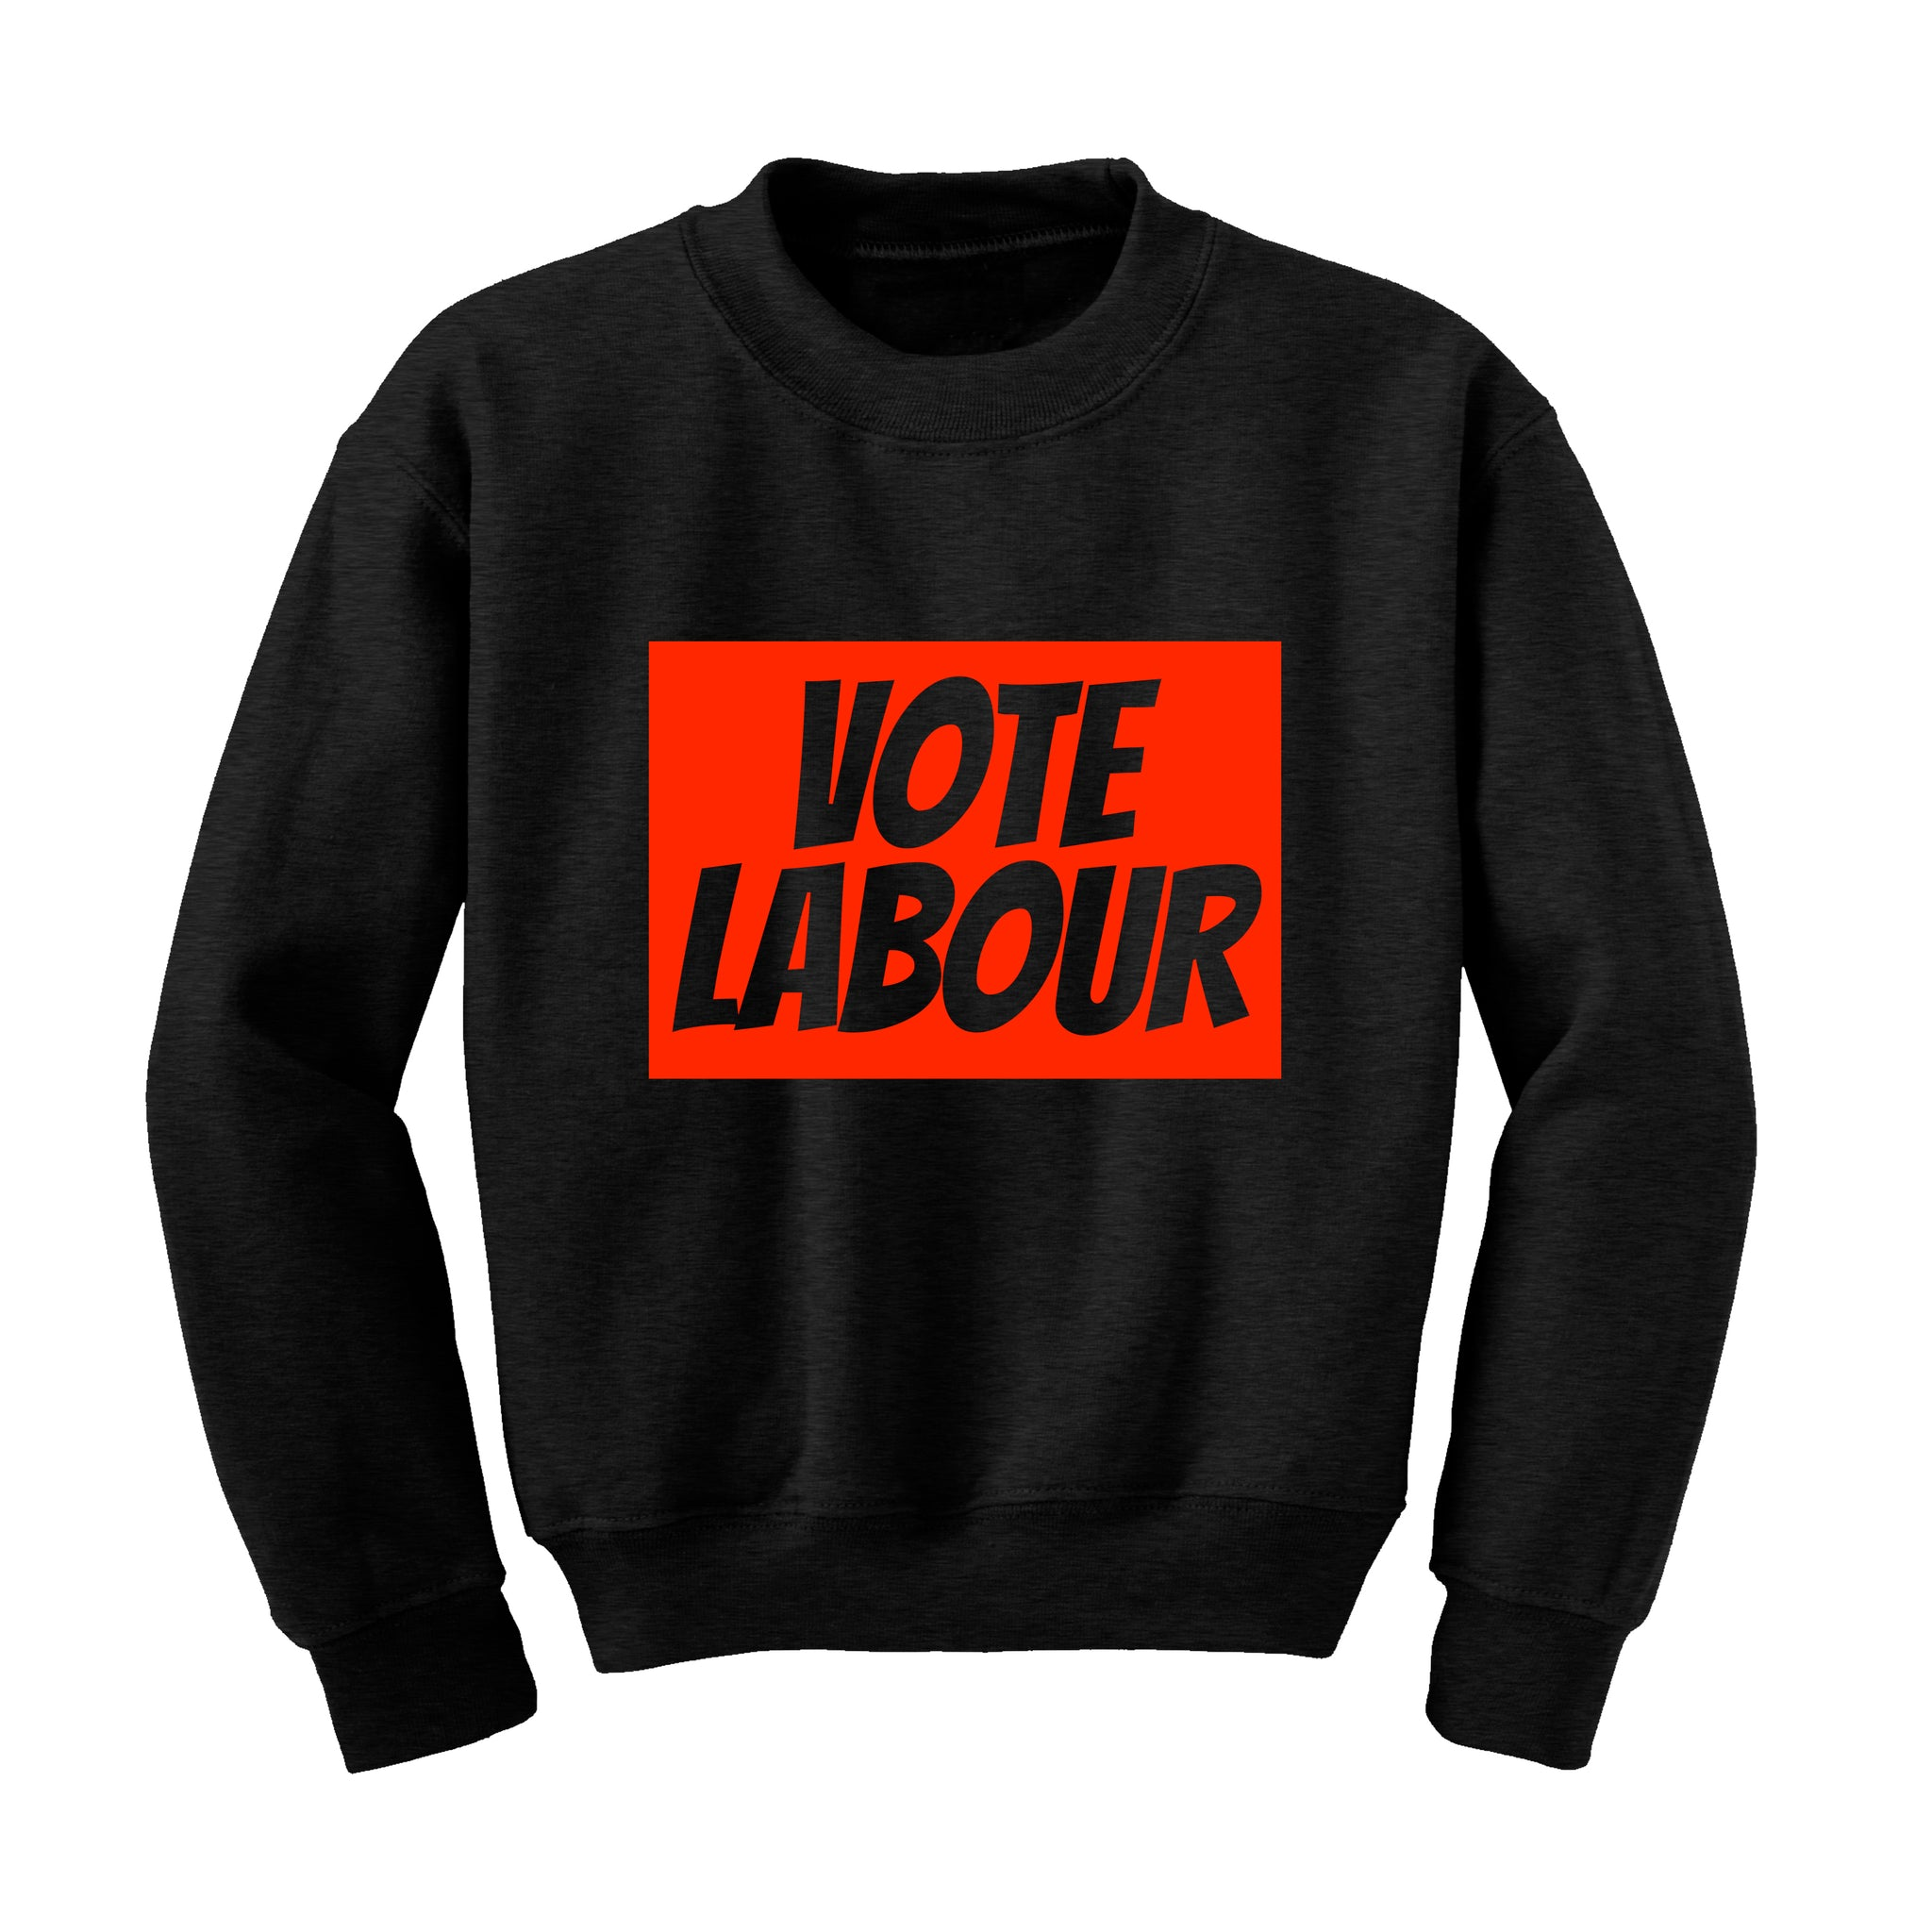 VOTE LABOUR Slogan Sweatshirt Labour Party Politics General Election Jeremy Corbyn